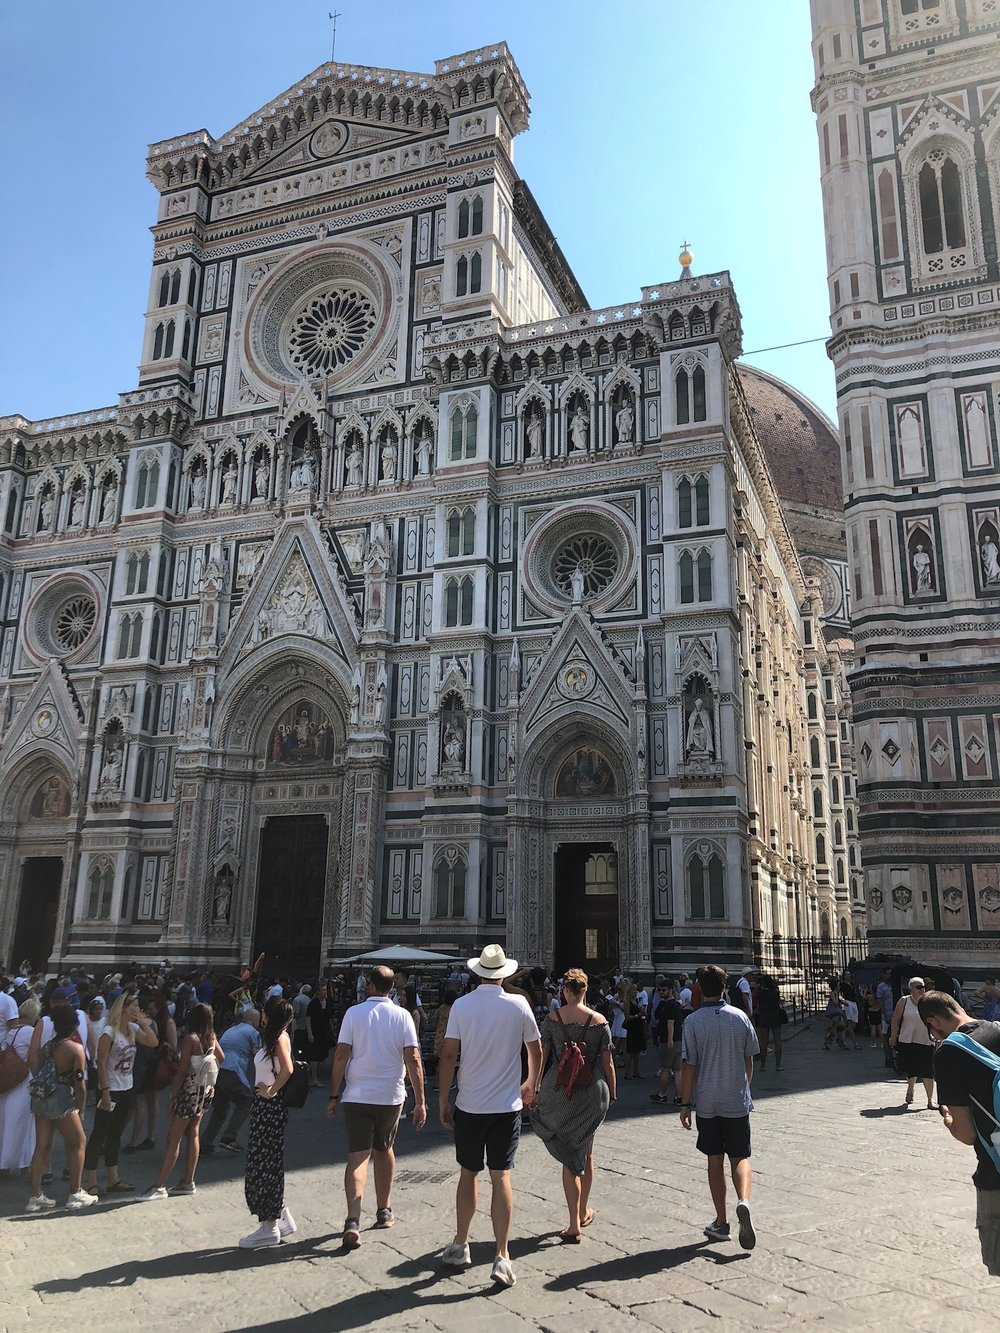 Duomo di Firenze, a central landmark in Florence.